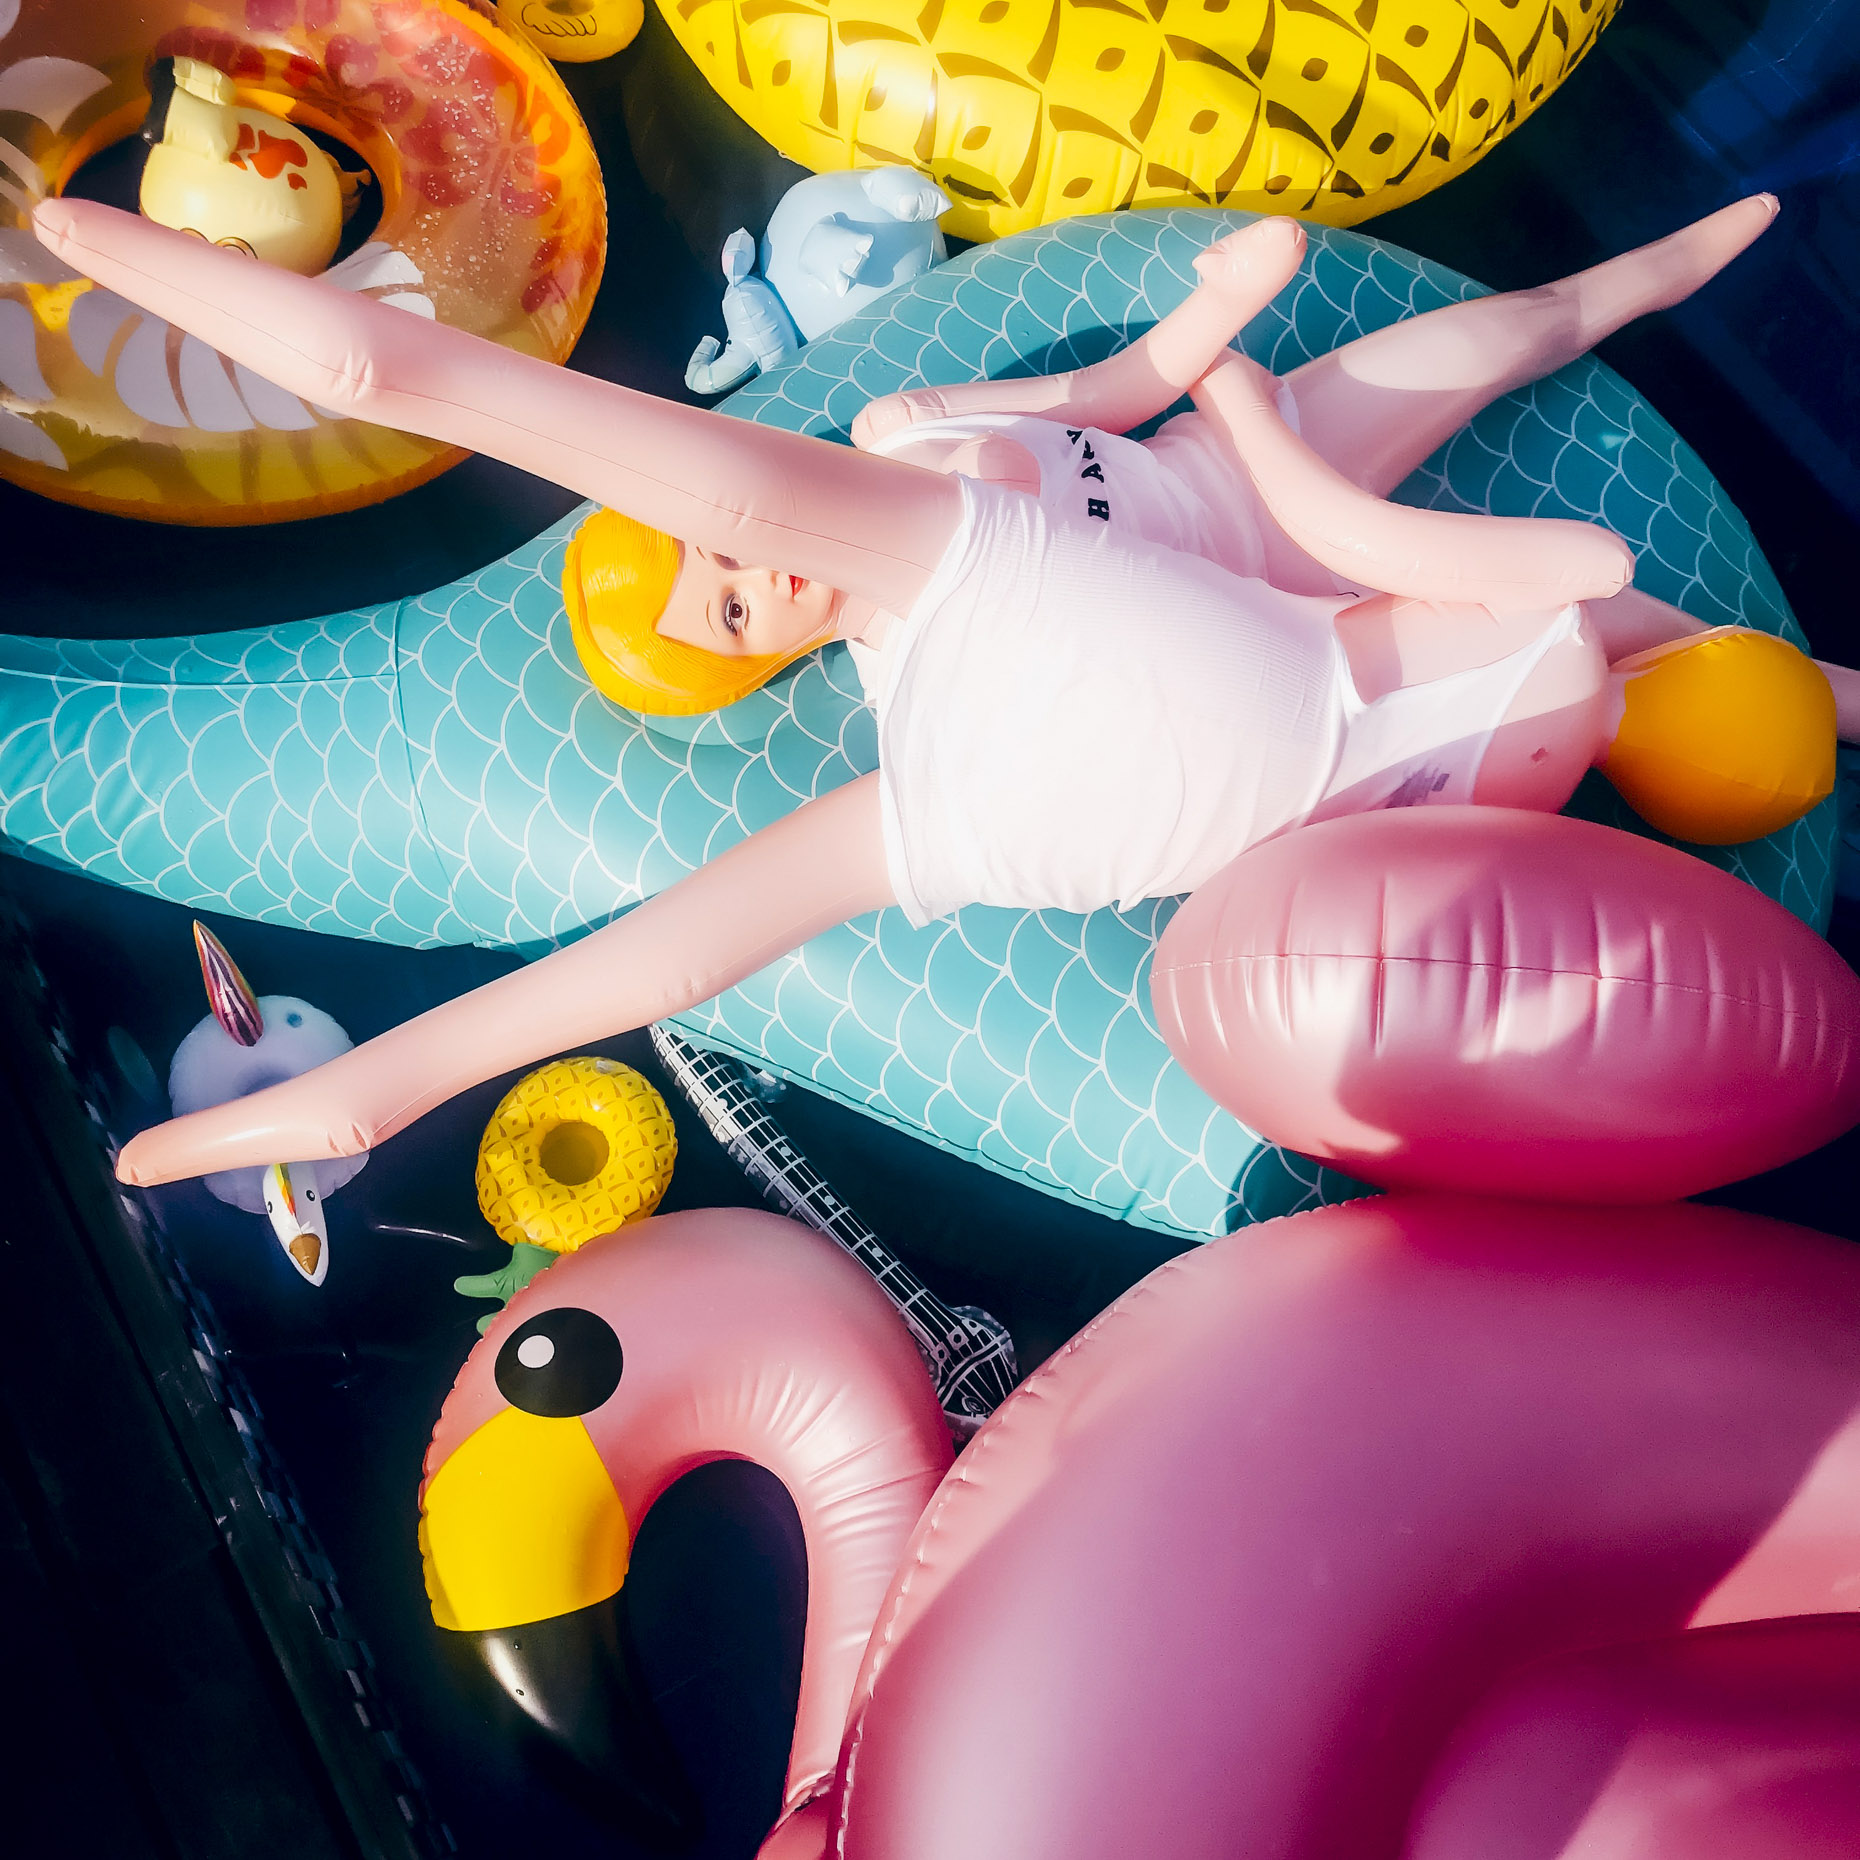 Overhead shot of after the pool party with mix of pool floaties and blow up dolls